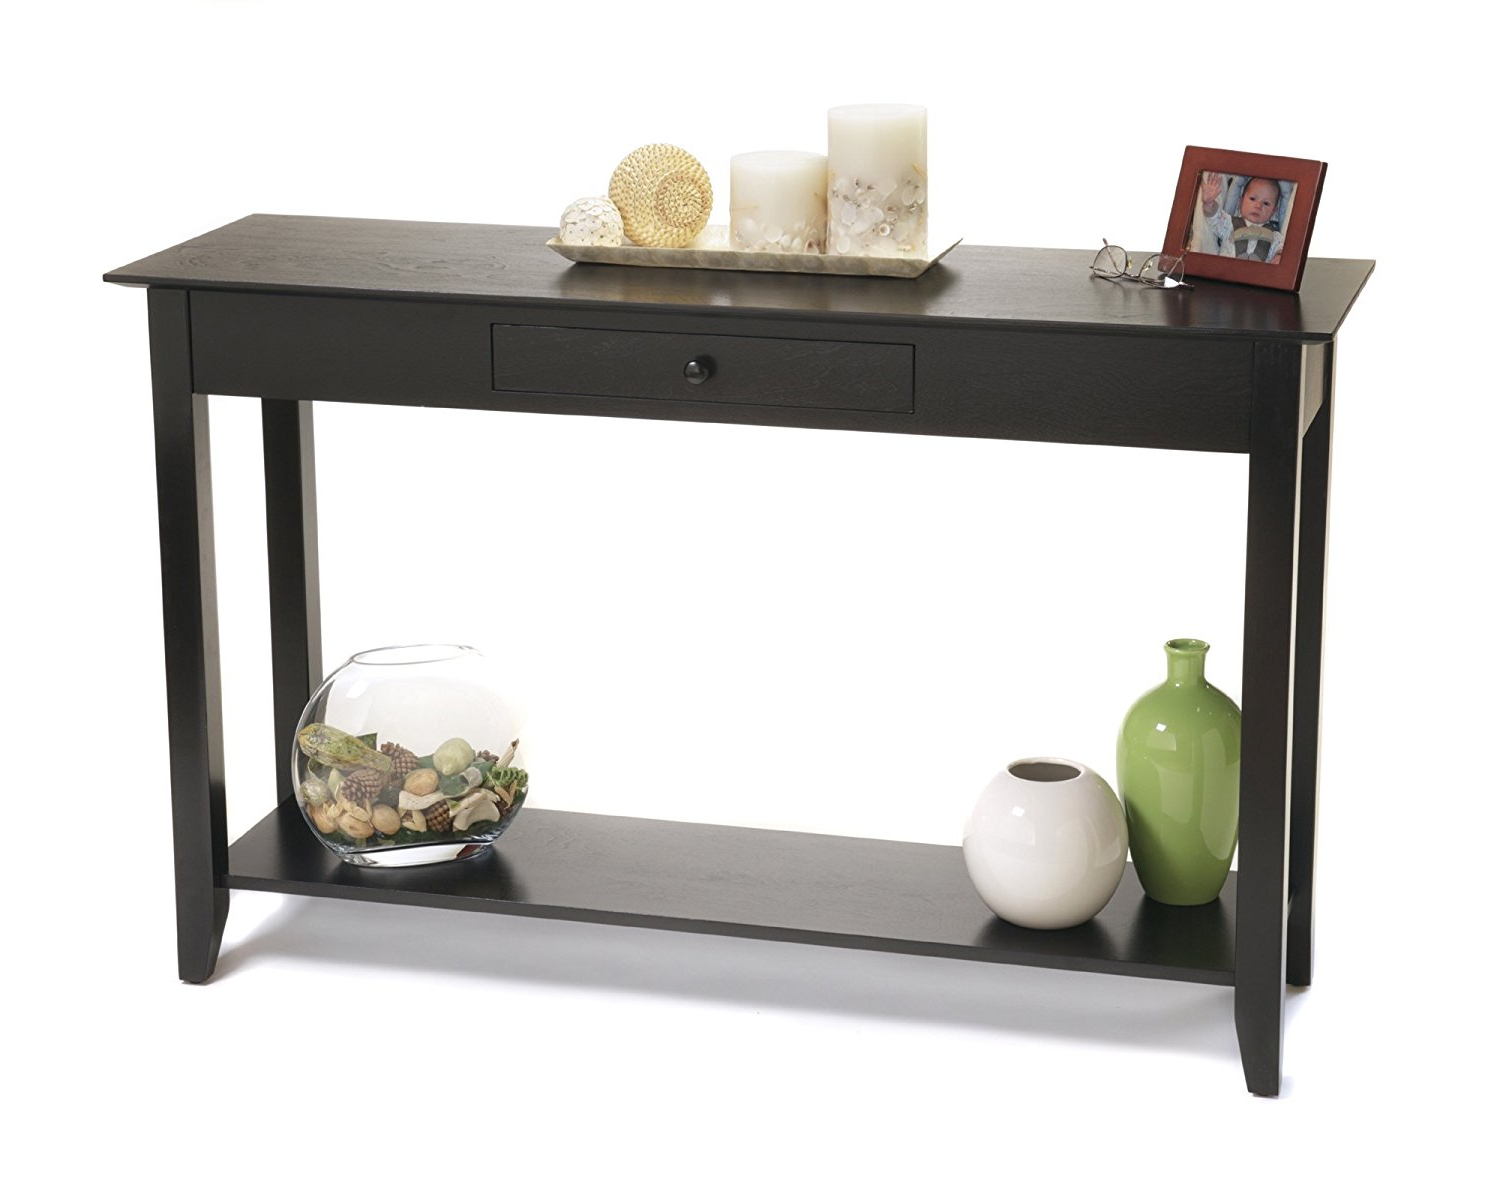 Preferred Sofa Table: Amusing Black Sofa Table Ikea Ideas Ikea White Sofa Pertaining To Parsons White Marble Top & Brass Base 48X16 Console Tables (View 15 of 20)